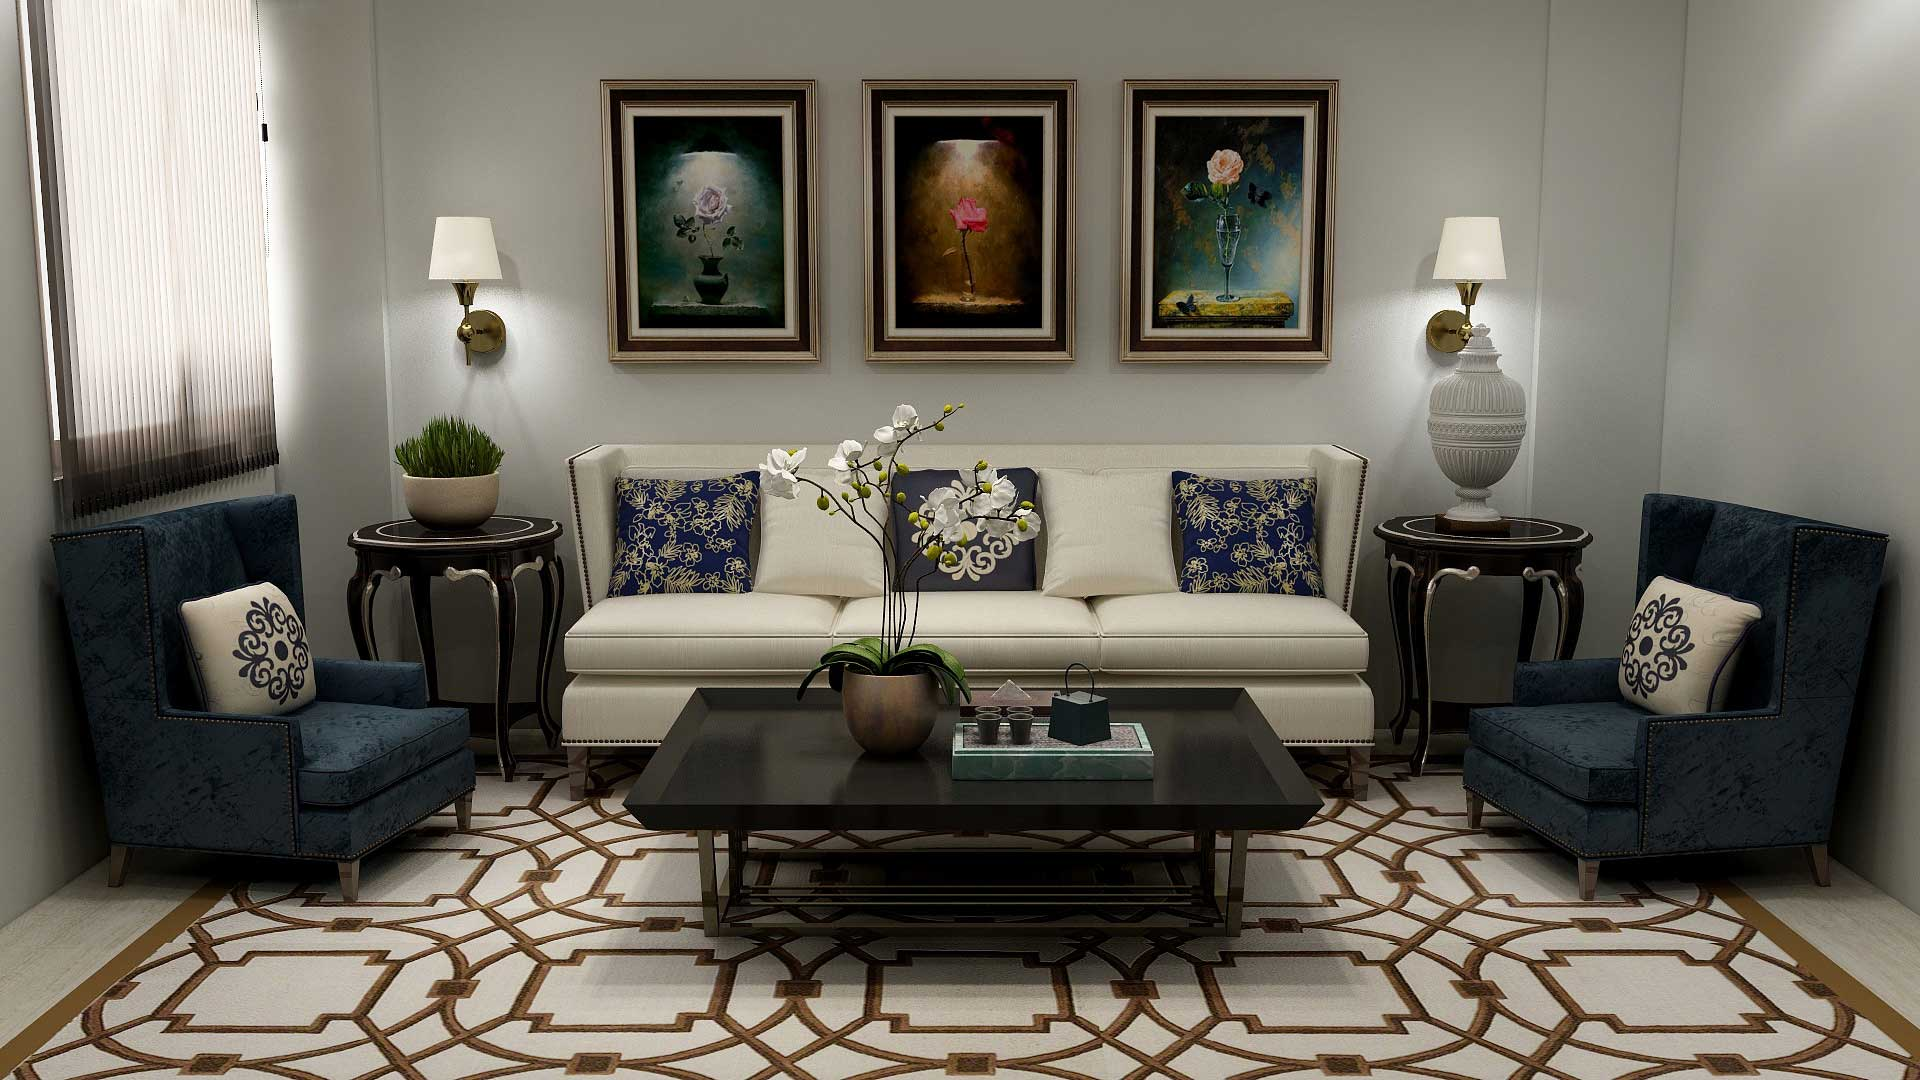 Modern Victorian living room decorated with sconce lighting, floral embroidered cushions and geometric-patterned floor rug.